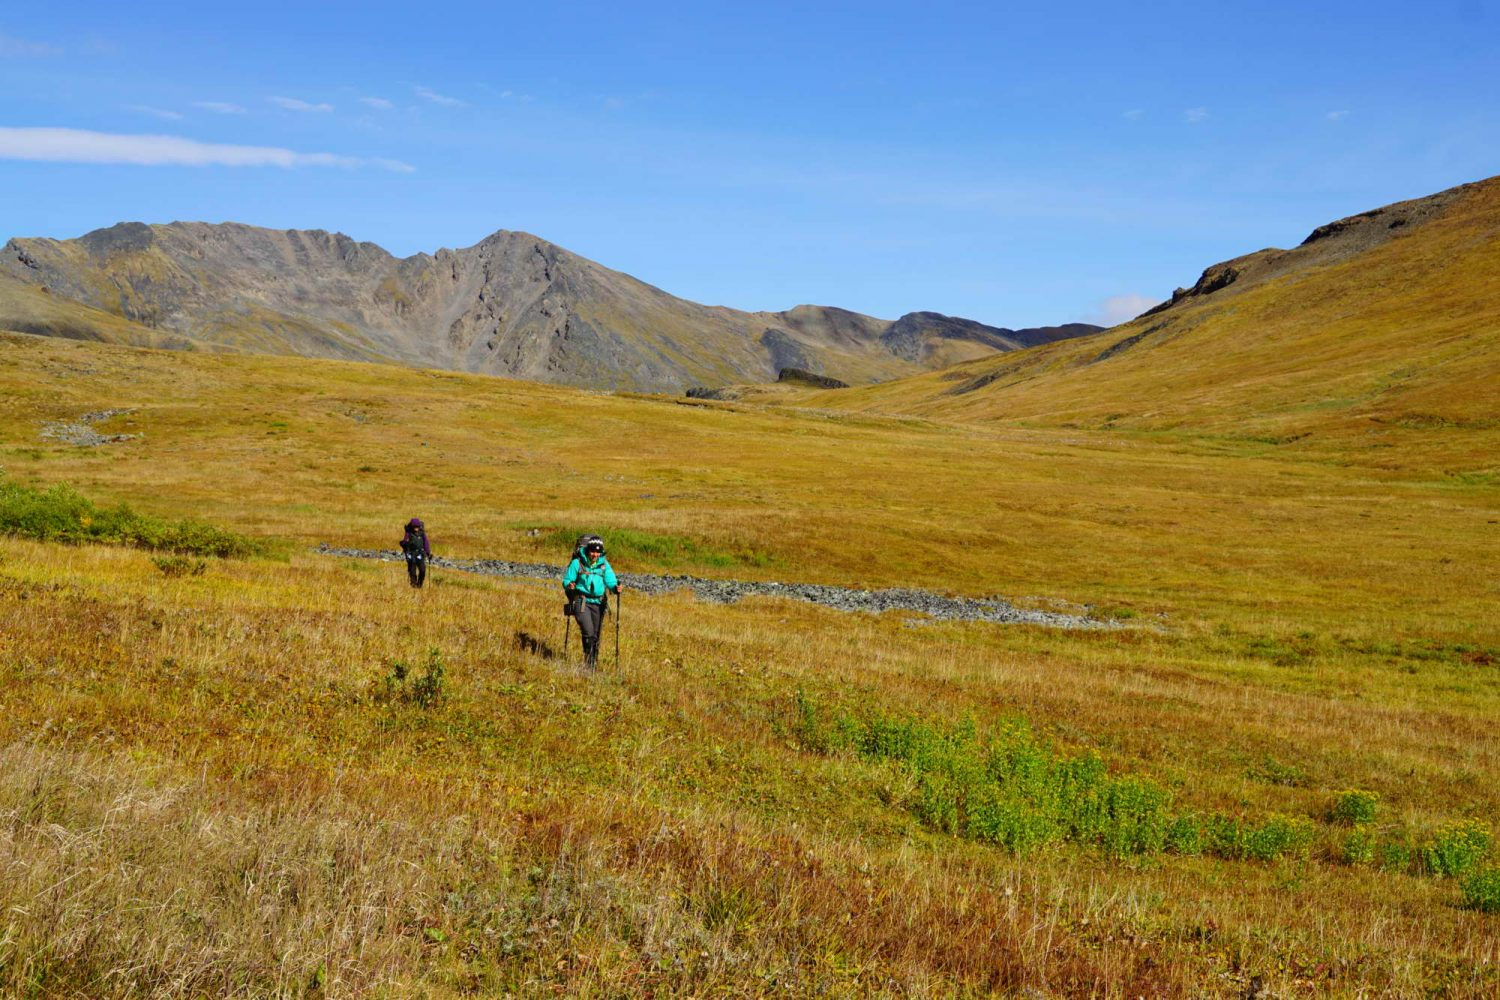 Backpacking-in-the-fall-colours-Along-the-ridge-Ogilvie-Mountains